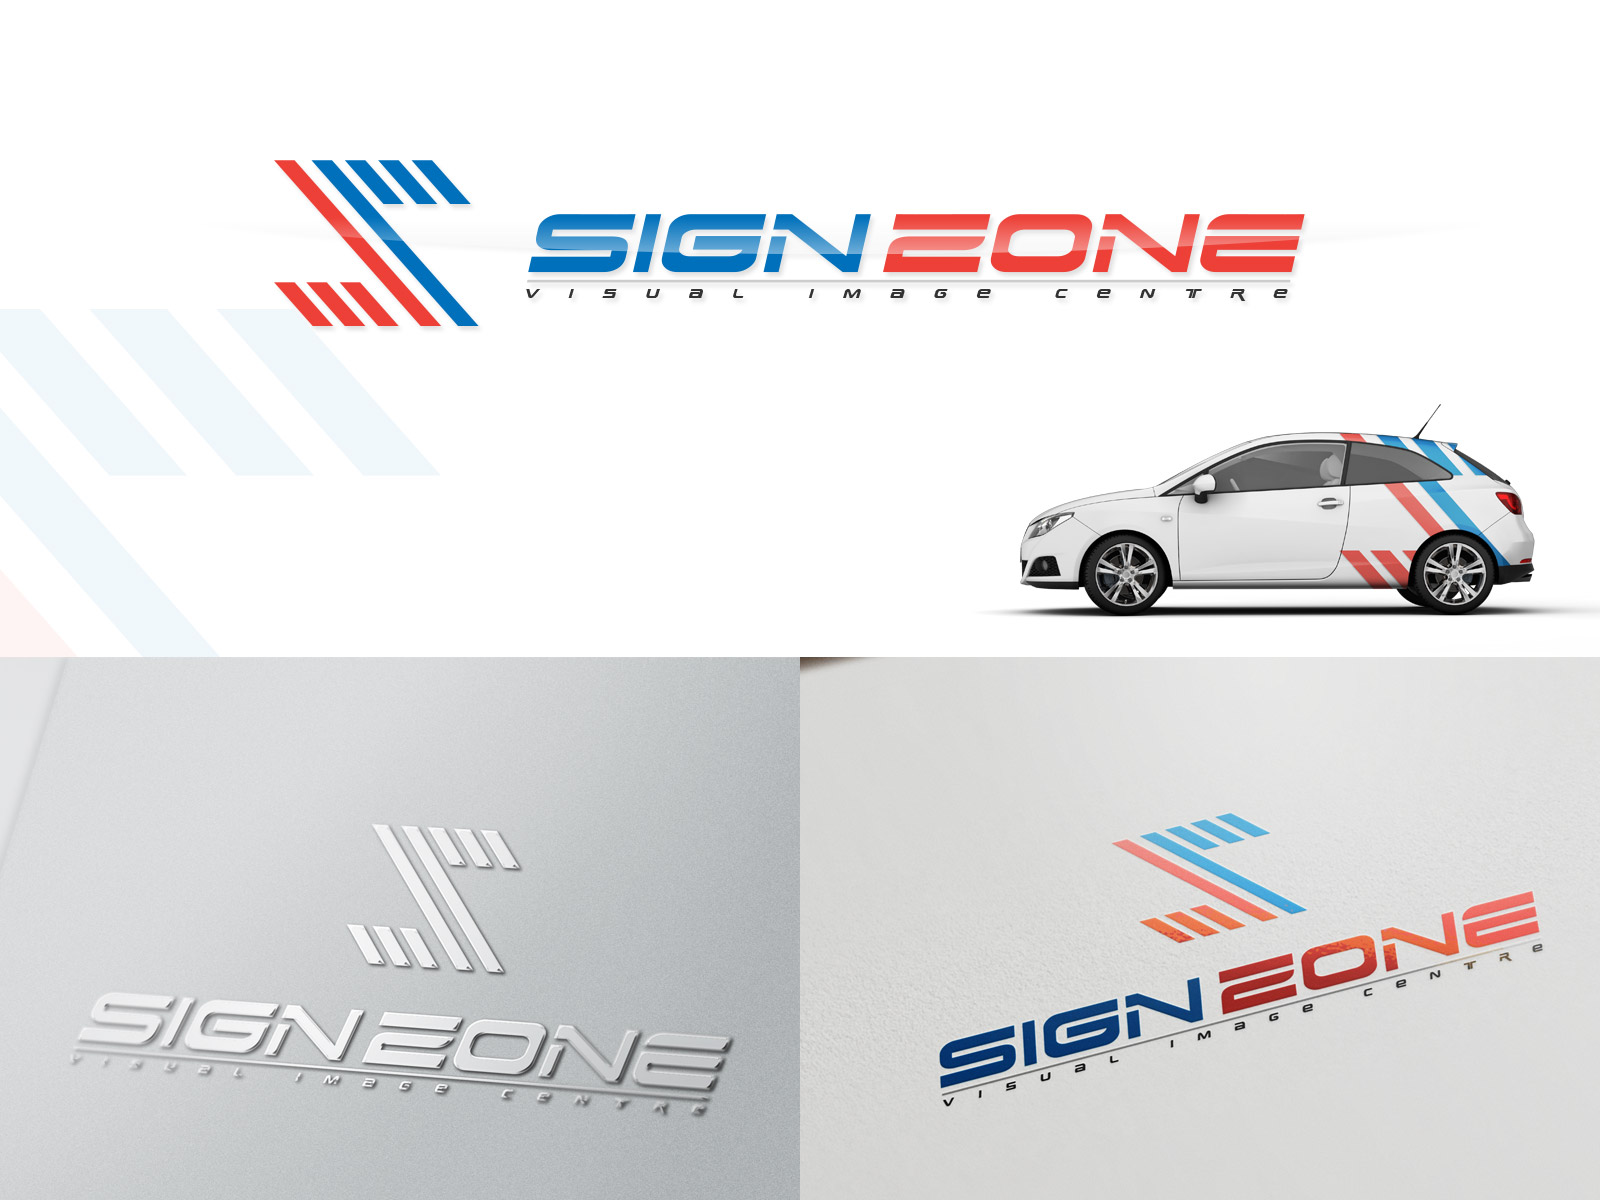 Logo Design by olii - Entry No. 99 in the Logo Design Contest Fun Logo Design for The Sign Zone.